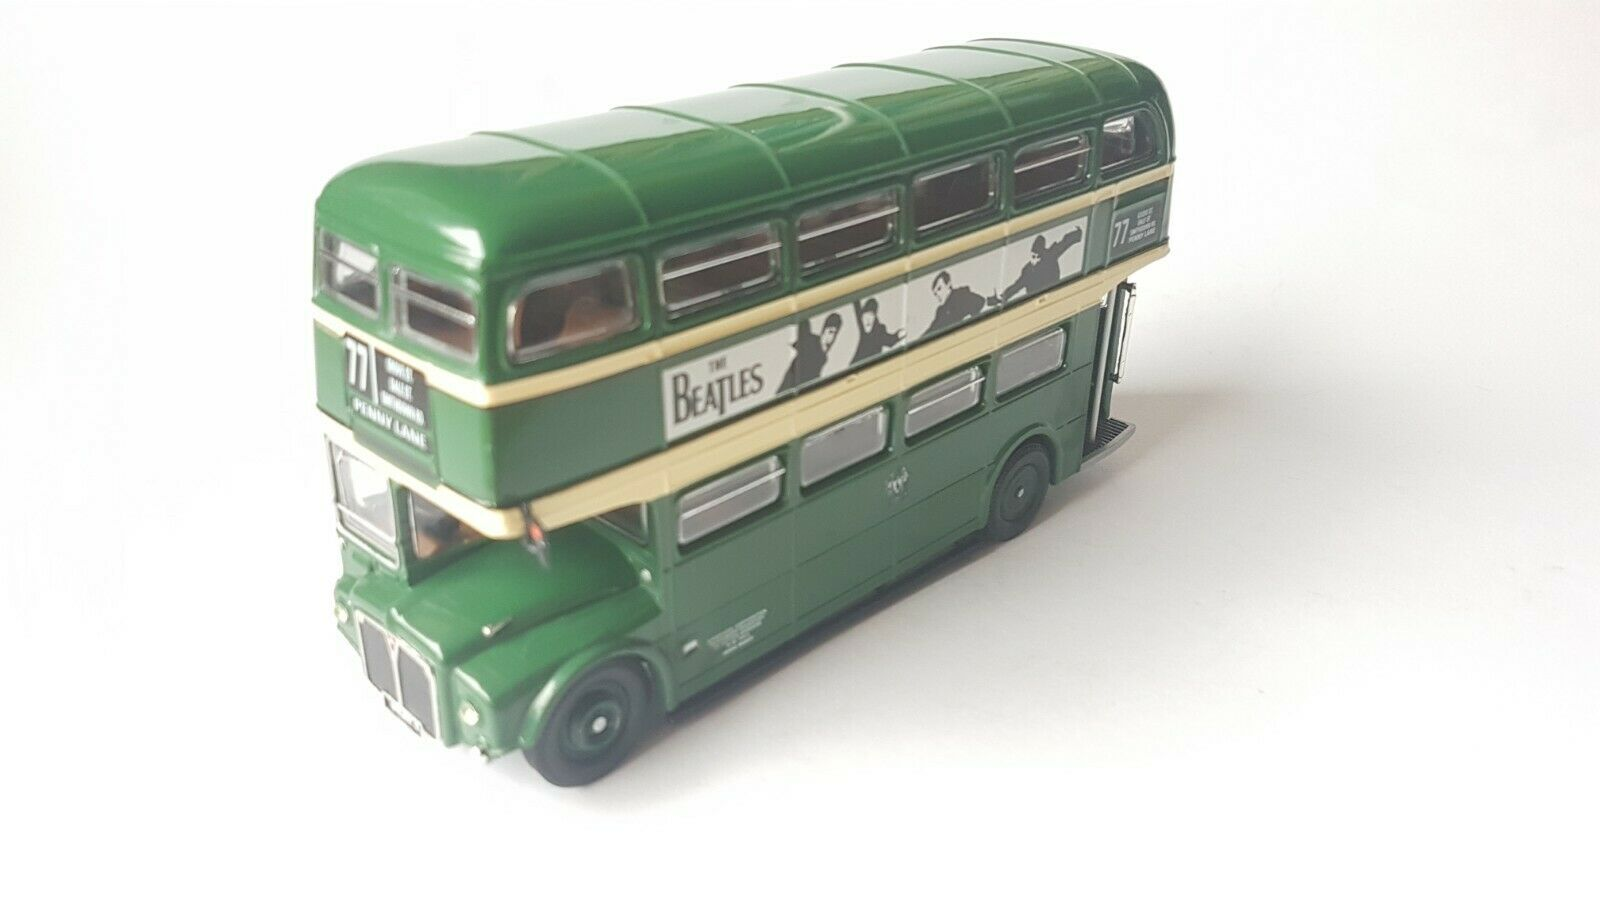 Corgi bus pennylane  The Beatles  1 50